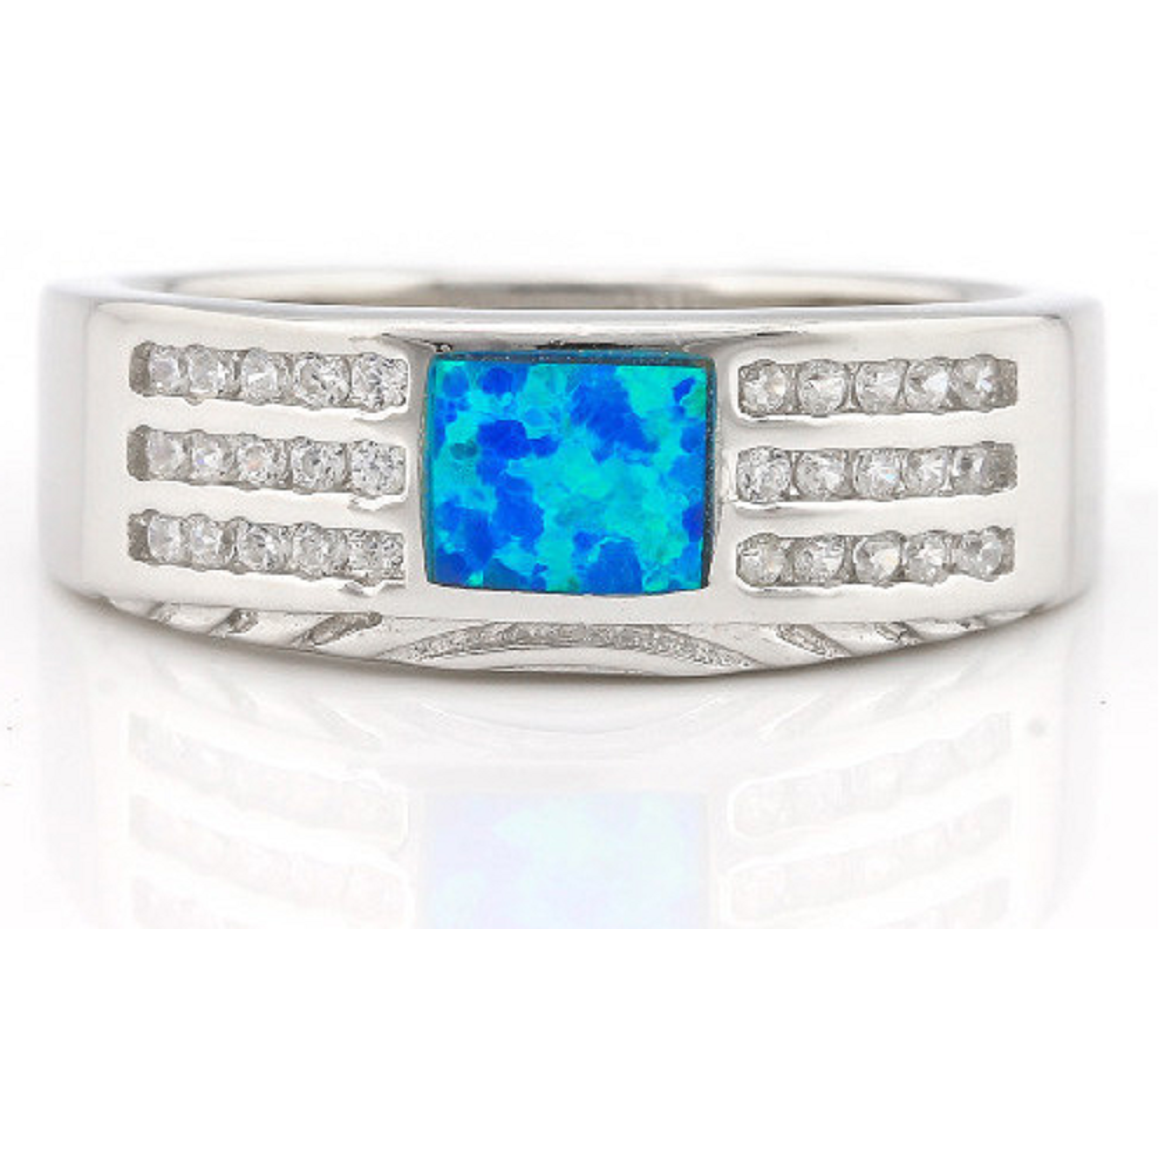 .925 Sterling Silver, Blue Opal & AAA Grade Australian Cz's Vintage Style Ring -  New Fashion Finds By Carole